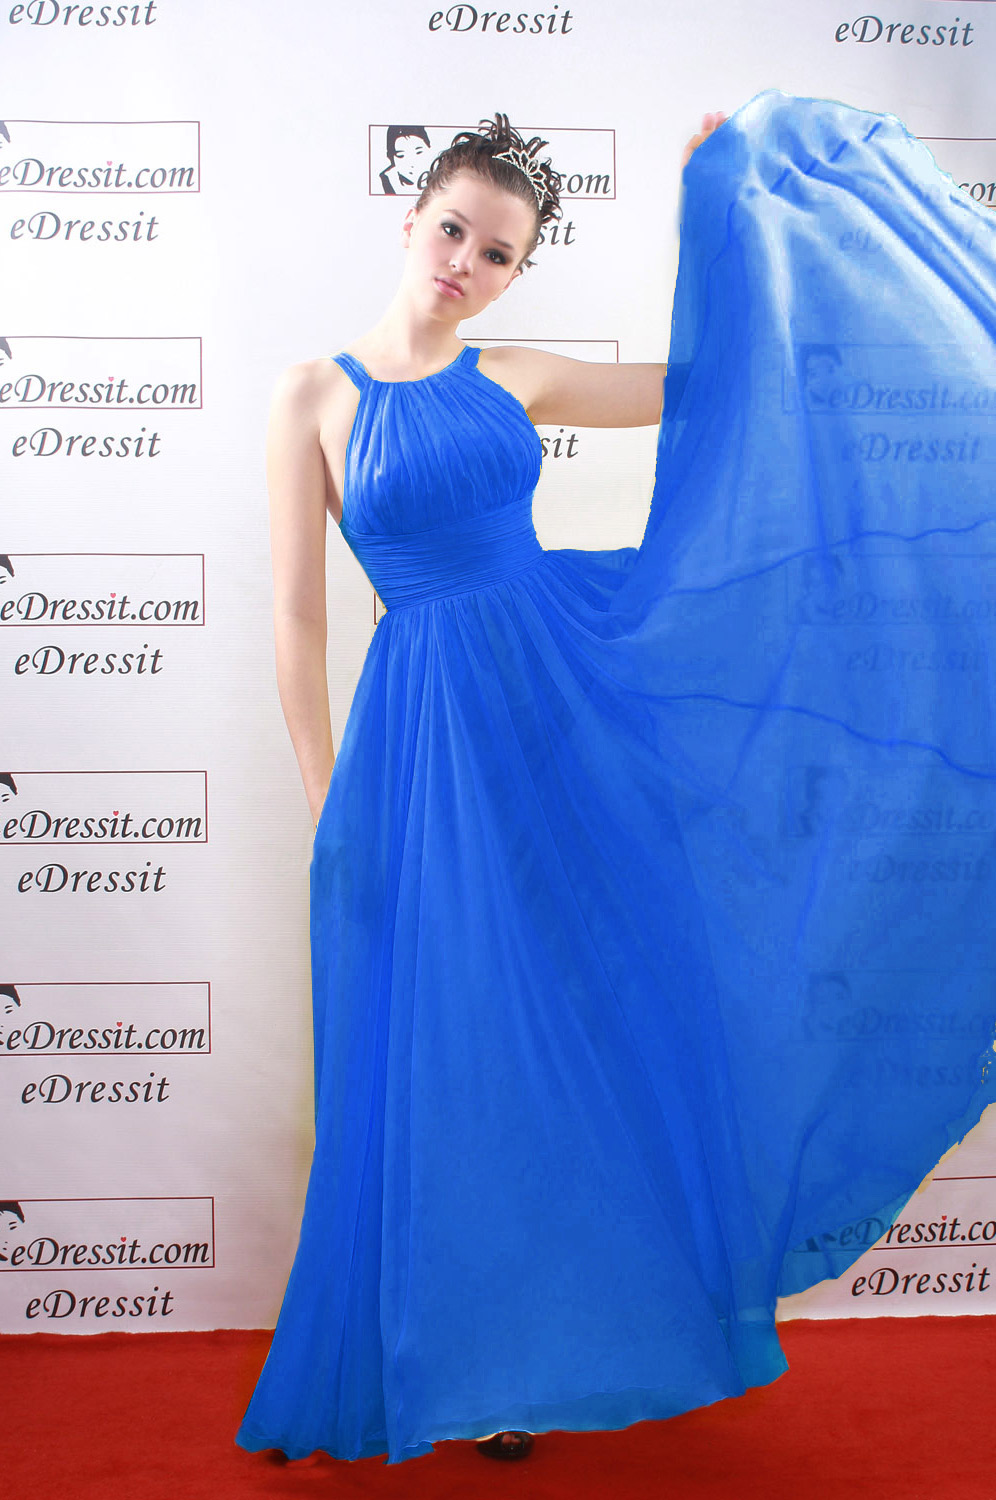 On sale !! eDressit Sexy dark blue Prom Gown Evening Dress (00081403e)